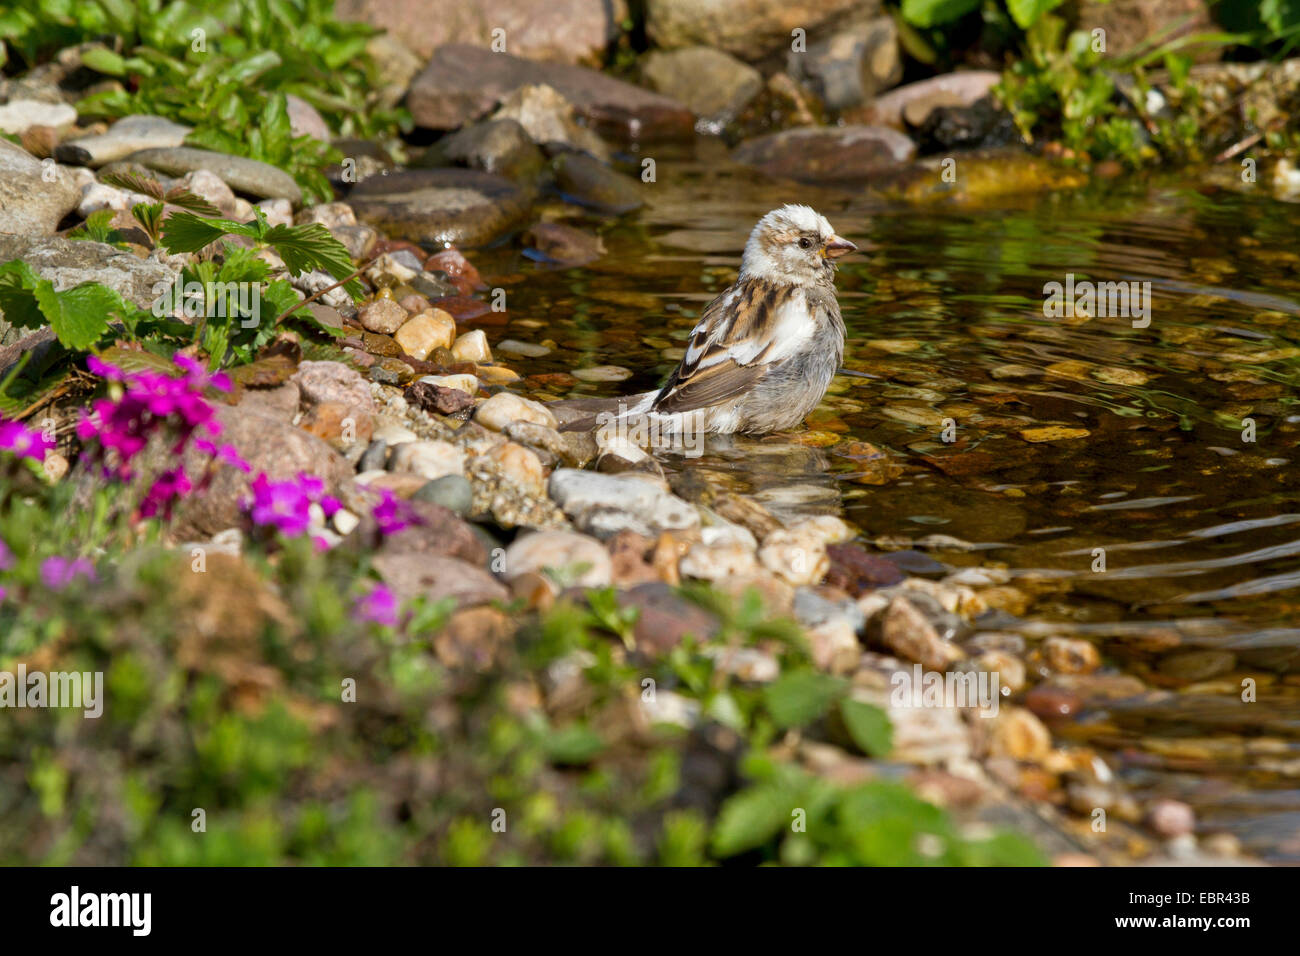 house sparrow (Passer domesticus), partial albinotic female in the creek, Germany - Stock Image